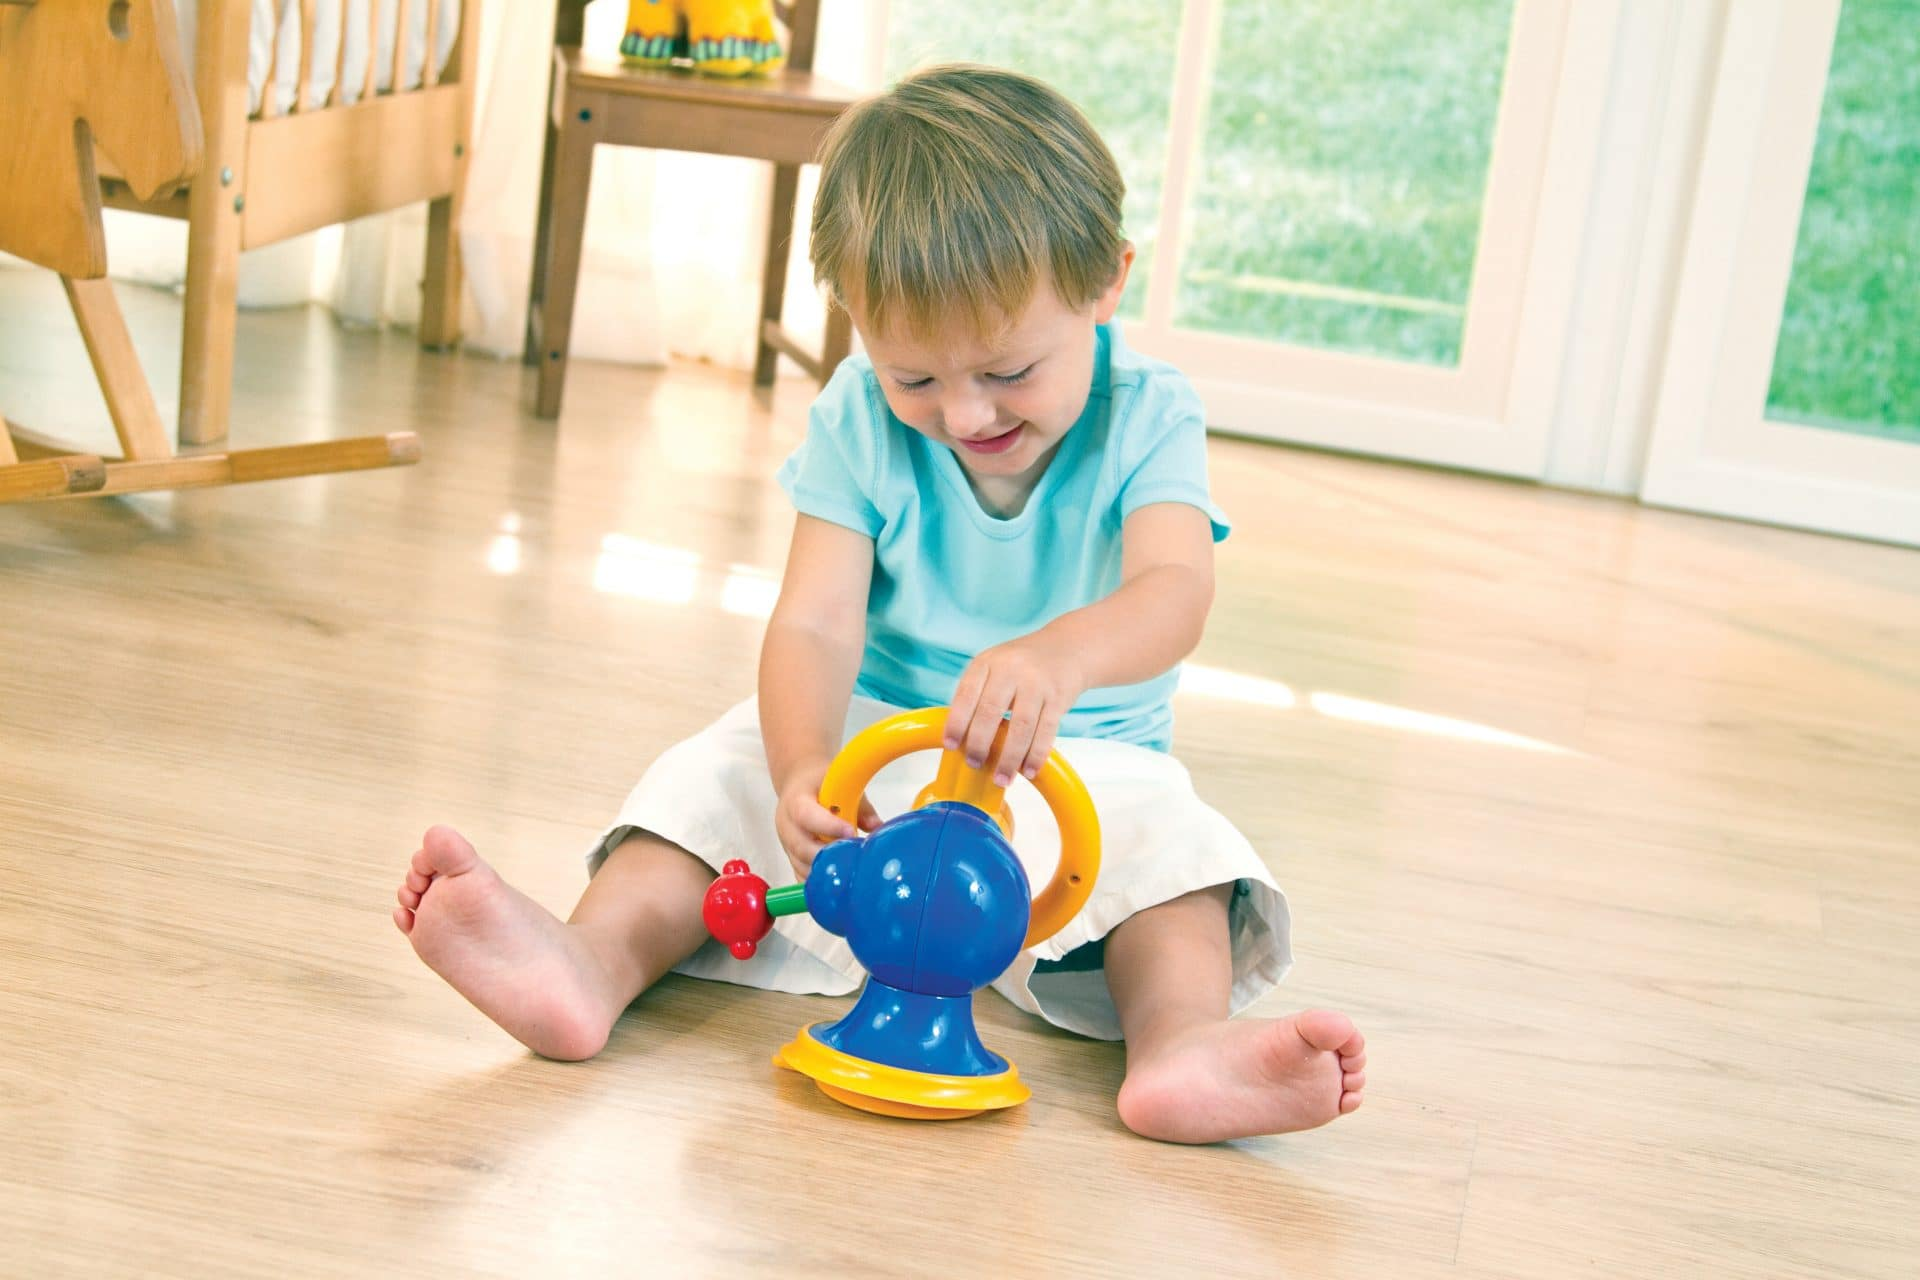 portable steering wheel for imaginative play